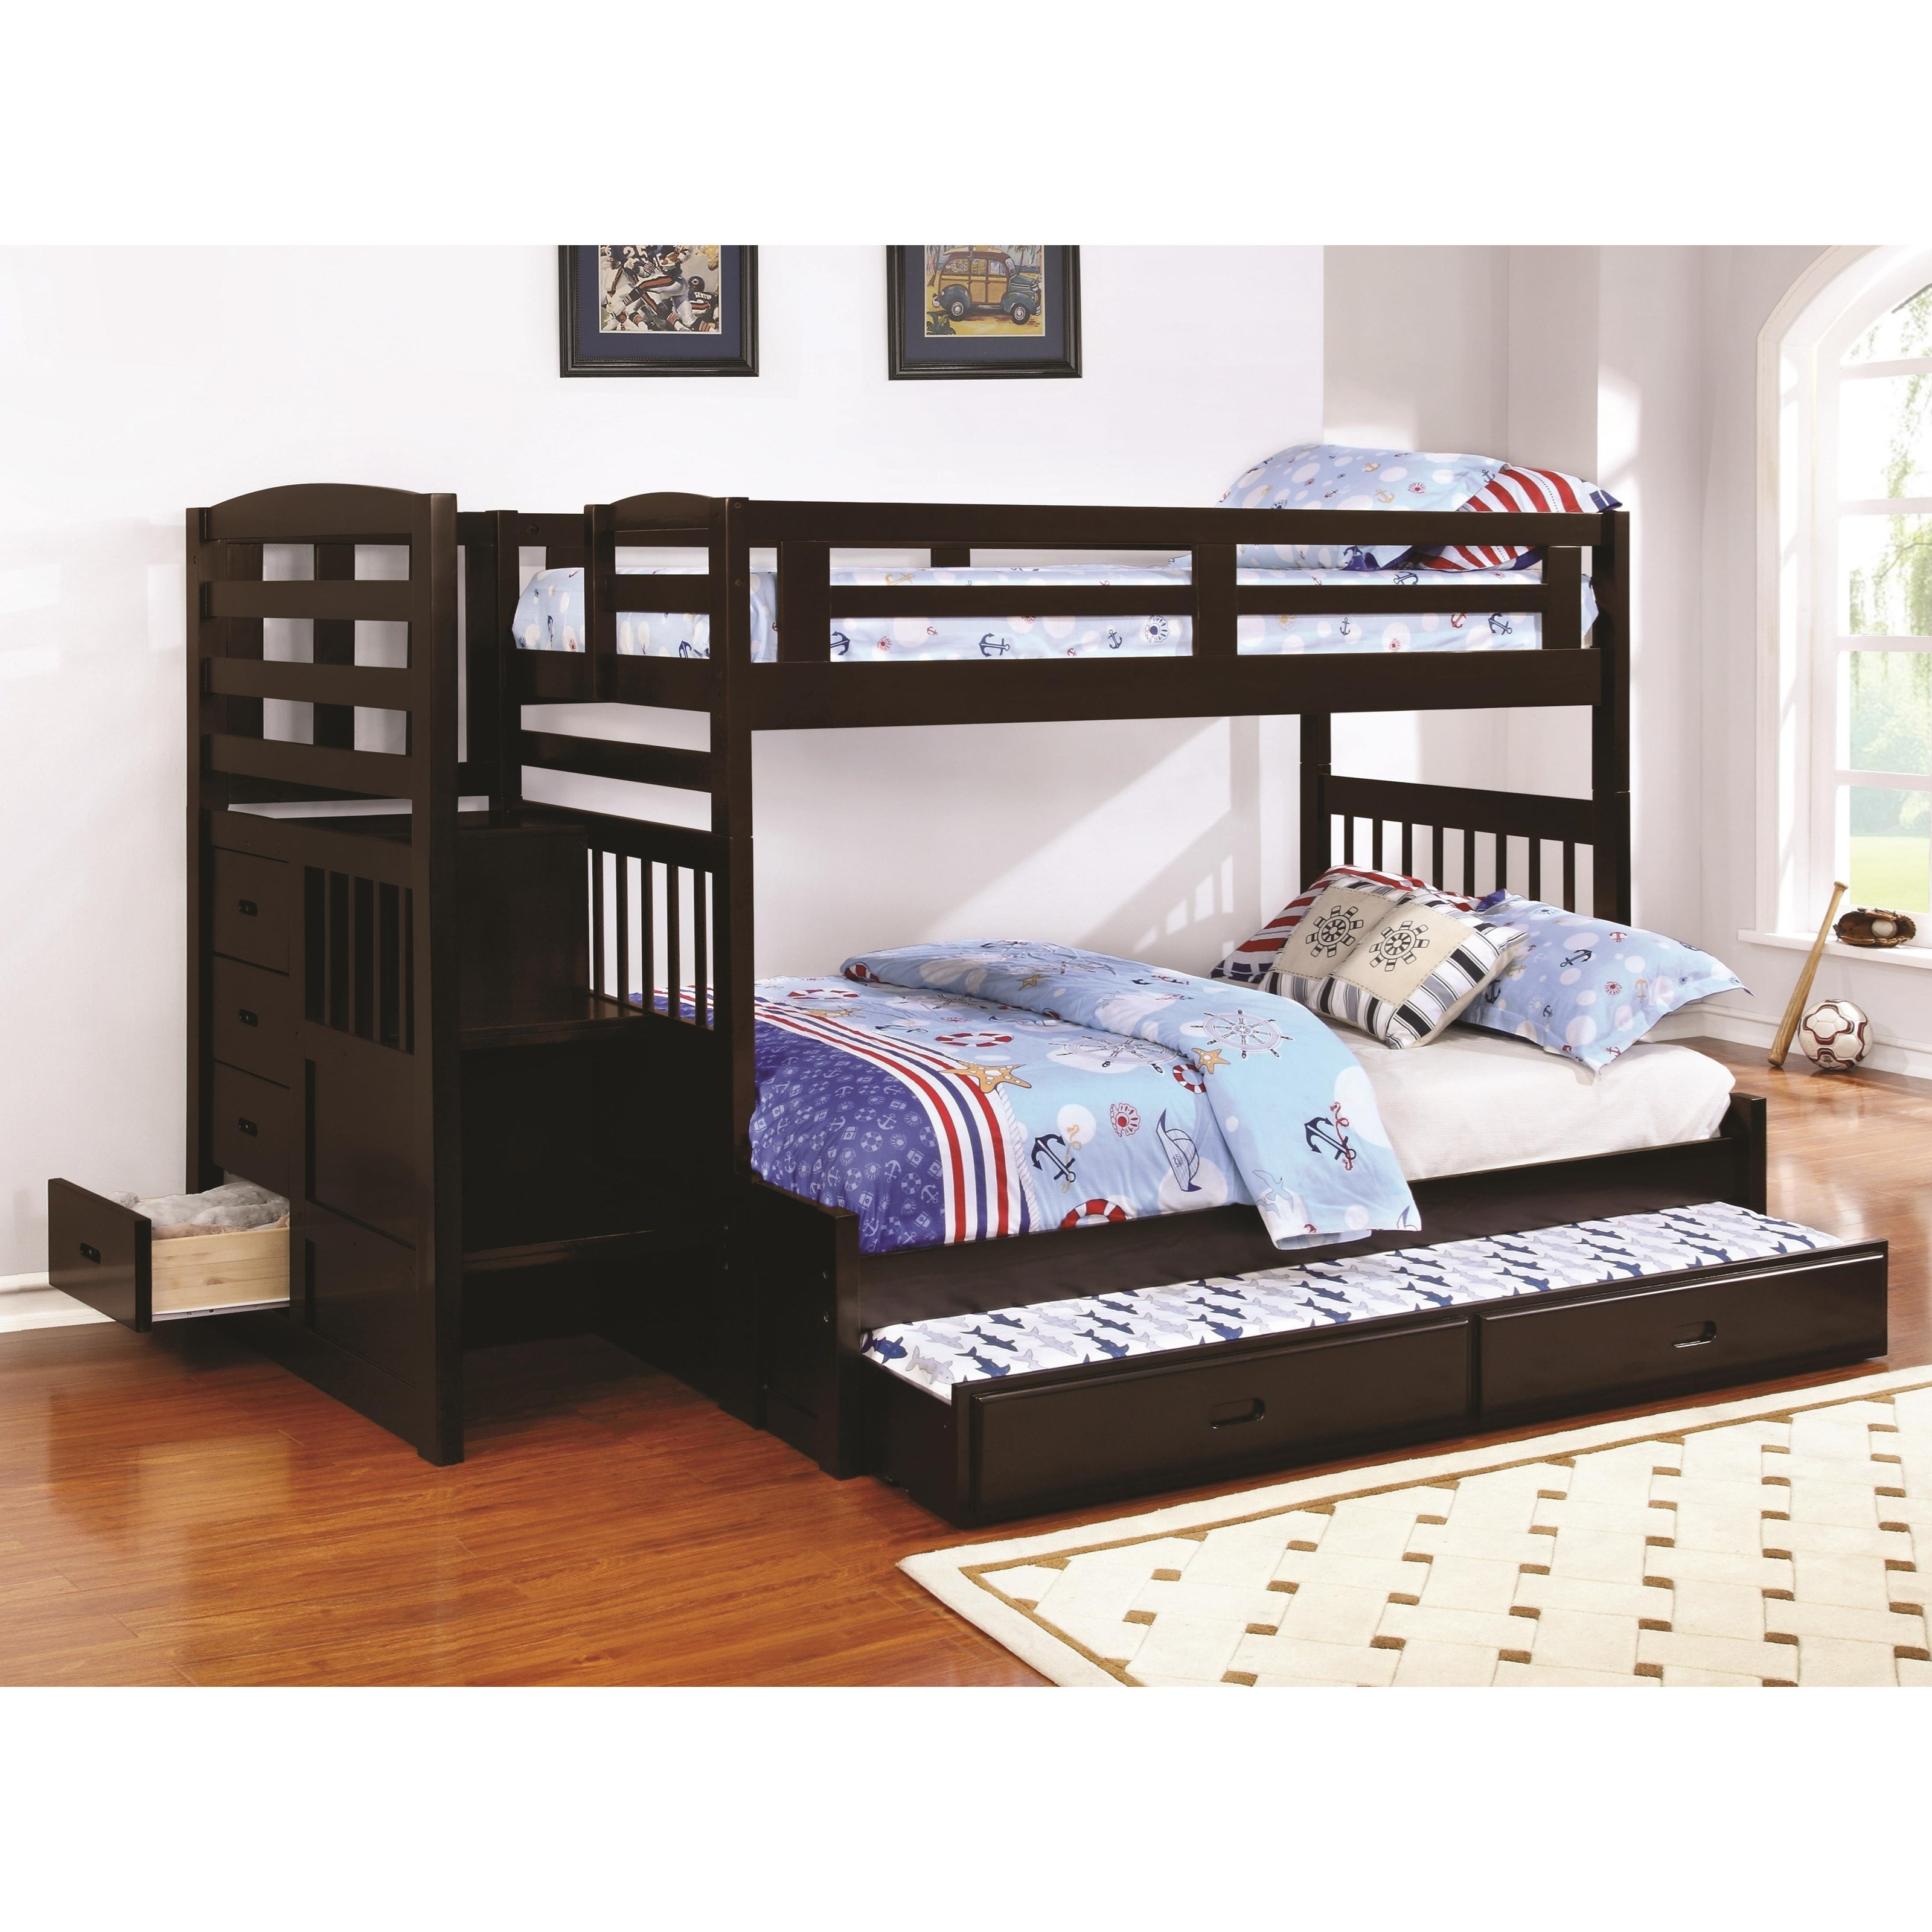 Coaster Dublin Twin Over Full Stairway Bunk Bed A1 Furniture Mattress Bunk Beds